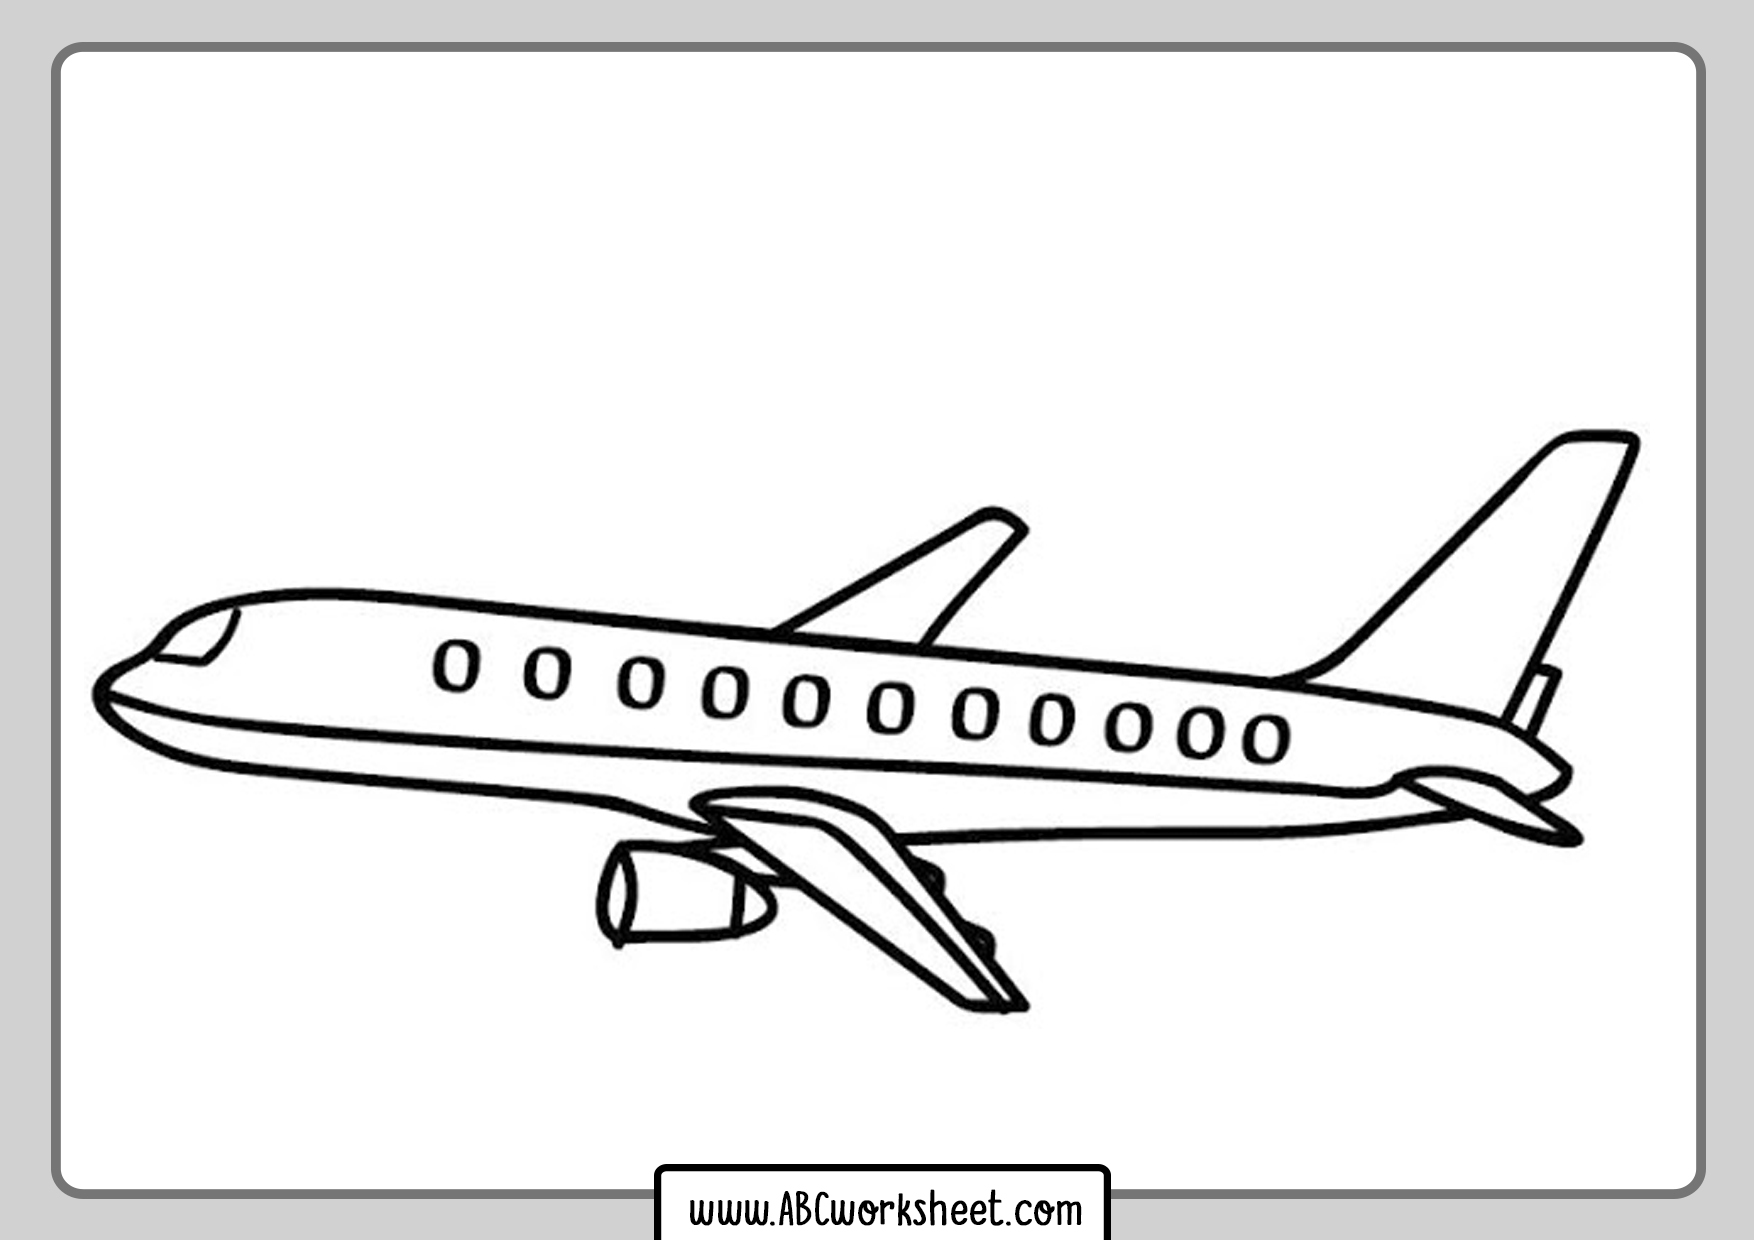 Comercial Airplane Coloring Page